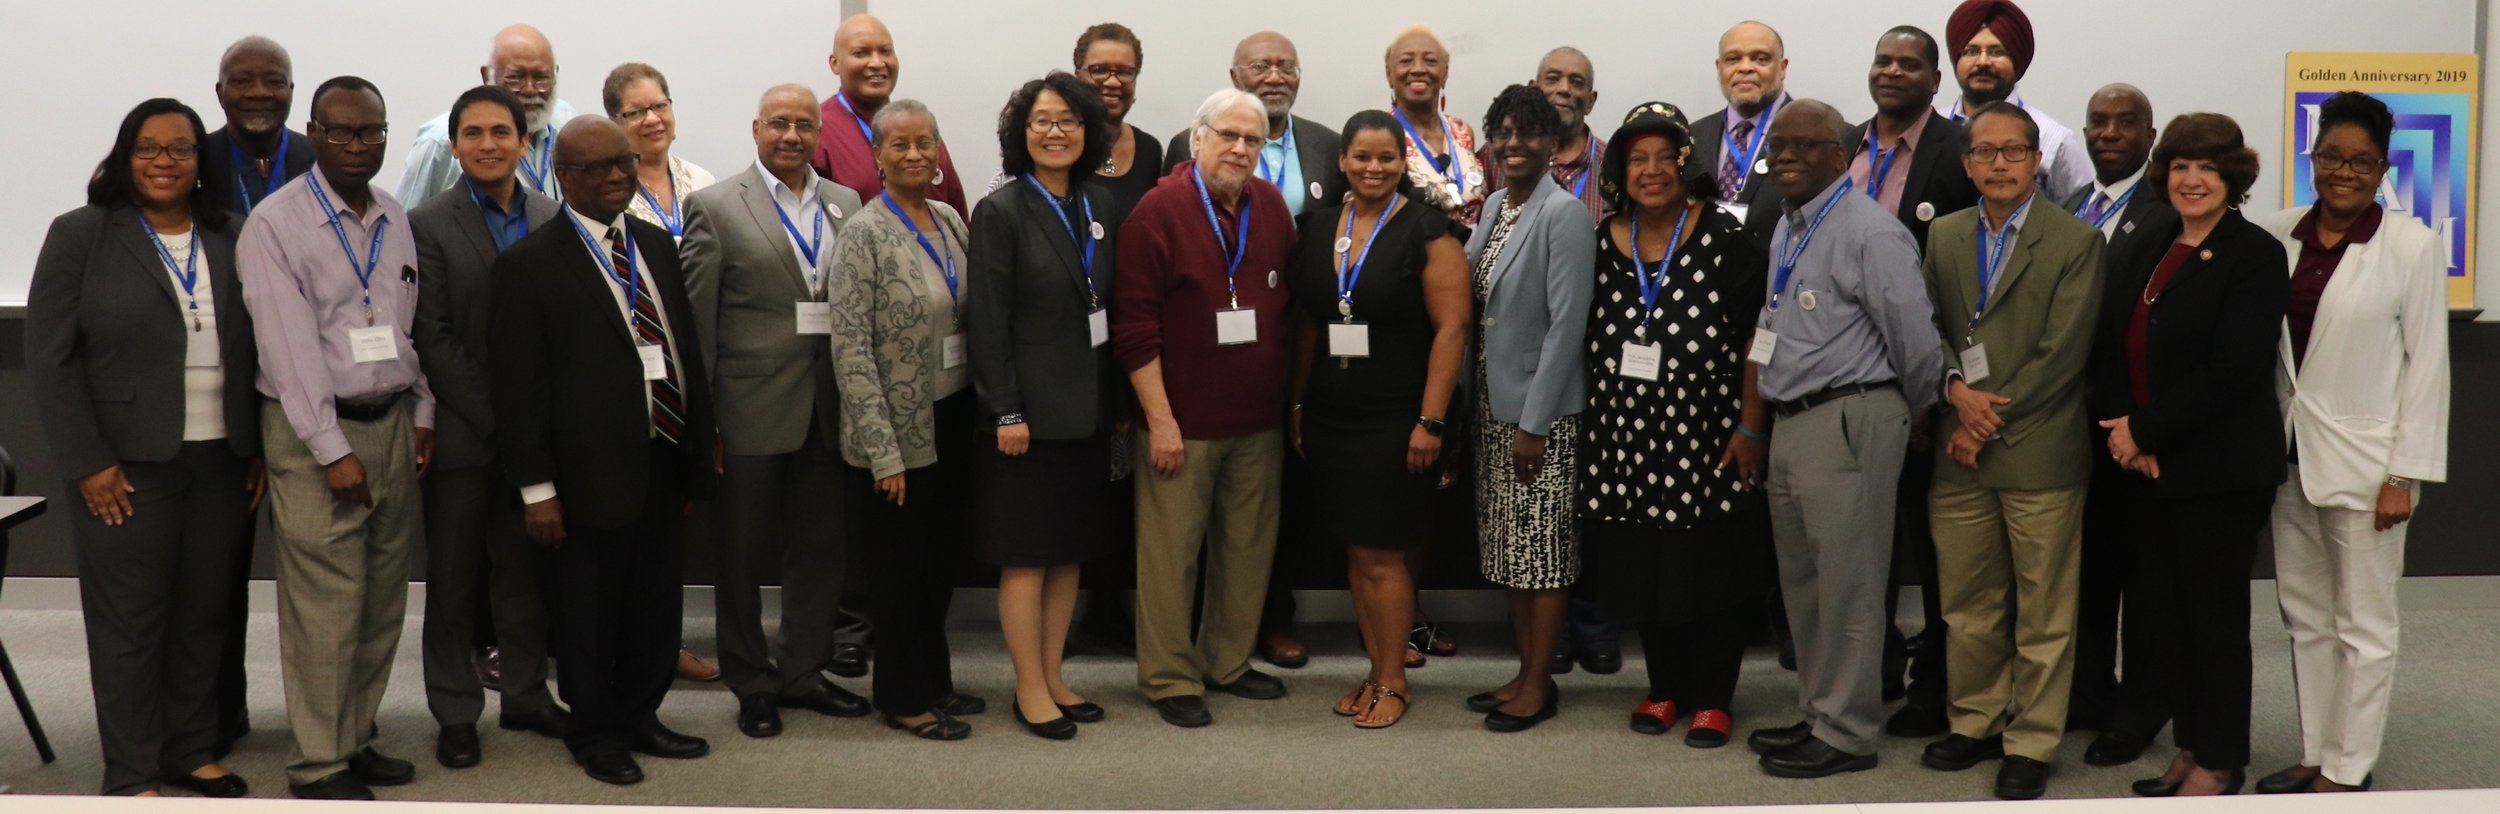 Diversity in mathematics illustrated at the 2019 National Association of Mathematicians Midwest/Southwest Regional Faculty Conference on Research and Teaching Excellence (FCRTE) hosted at Texas Southern University, an HBCU in Houston, Texas.